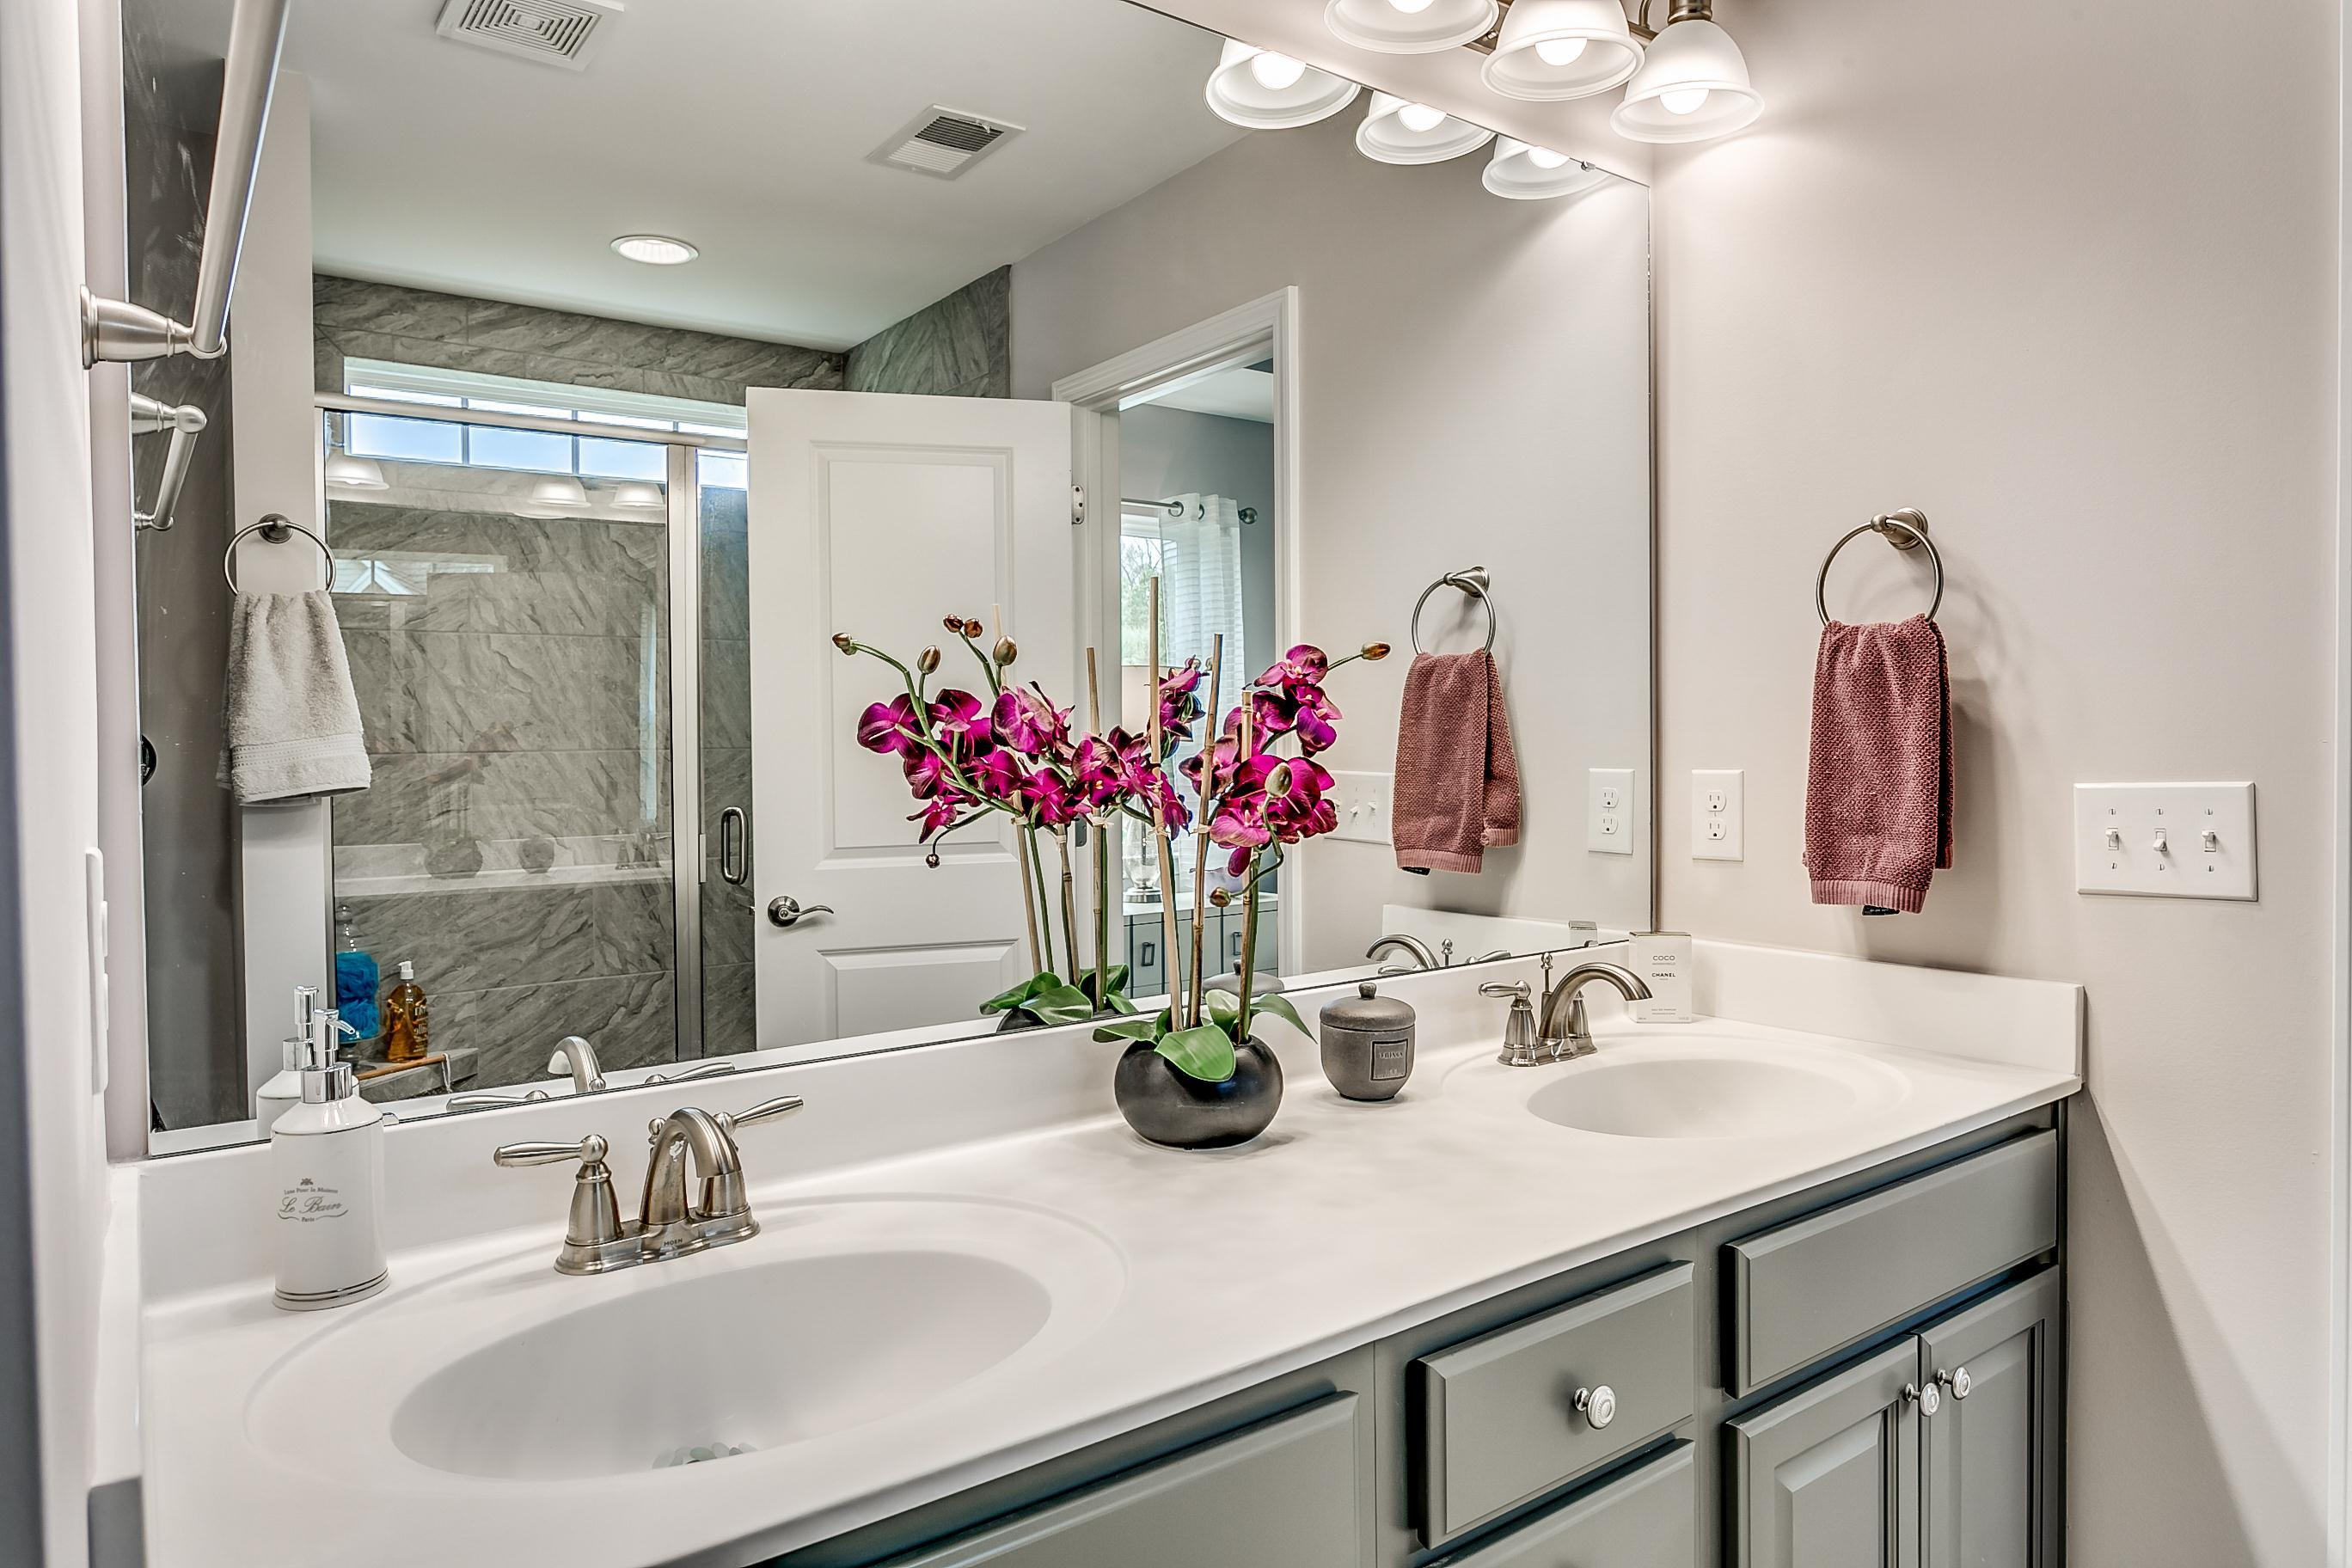 Bathroom featured in the Palmetto By RealStar Homes in Myrtle Beach, SC